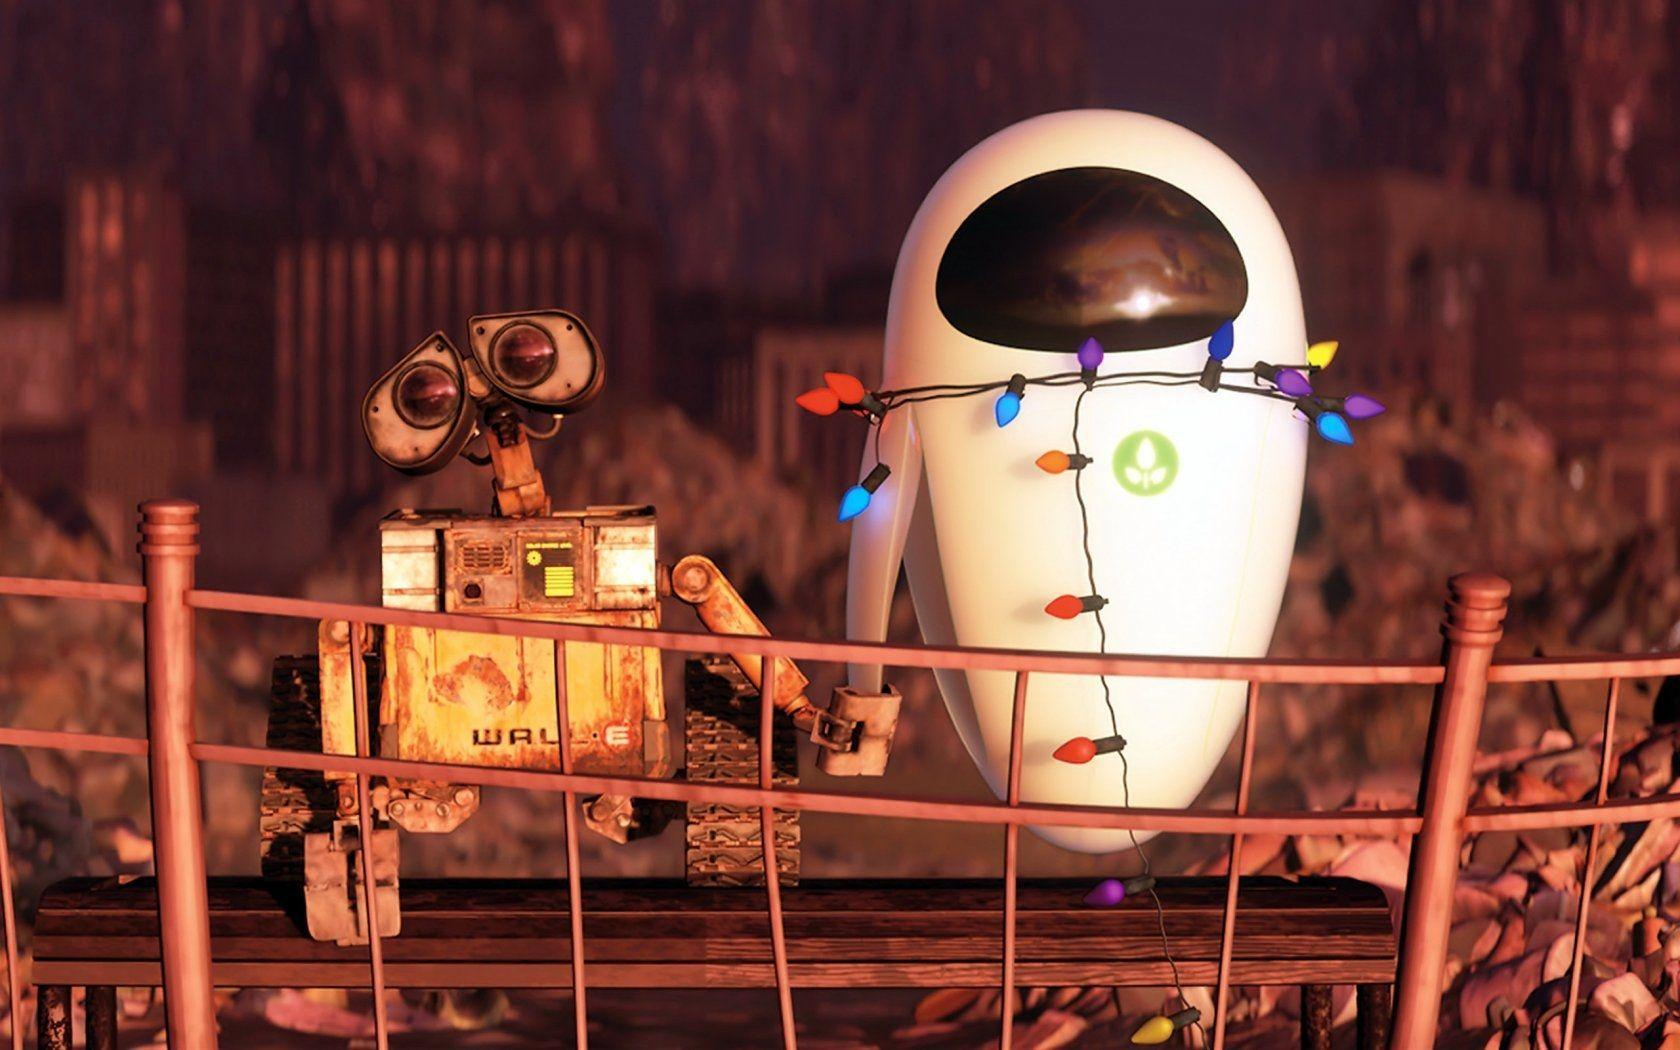 wall-e 4k images free download